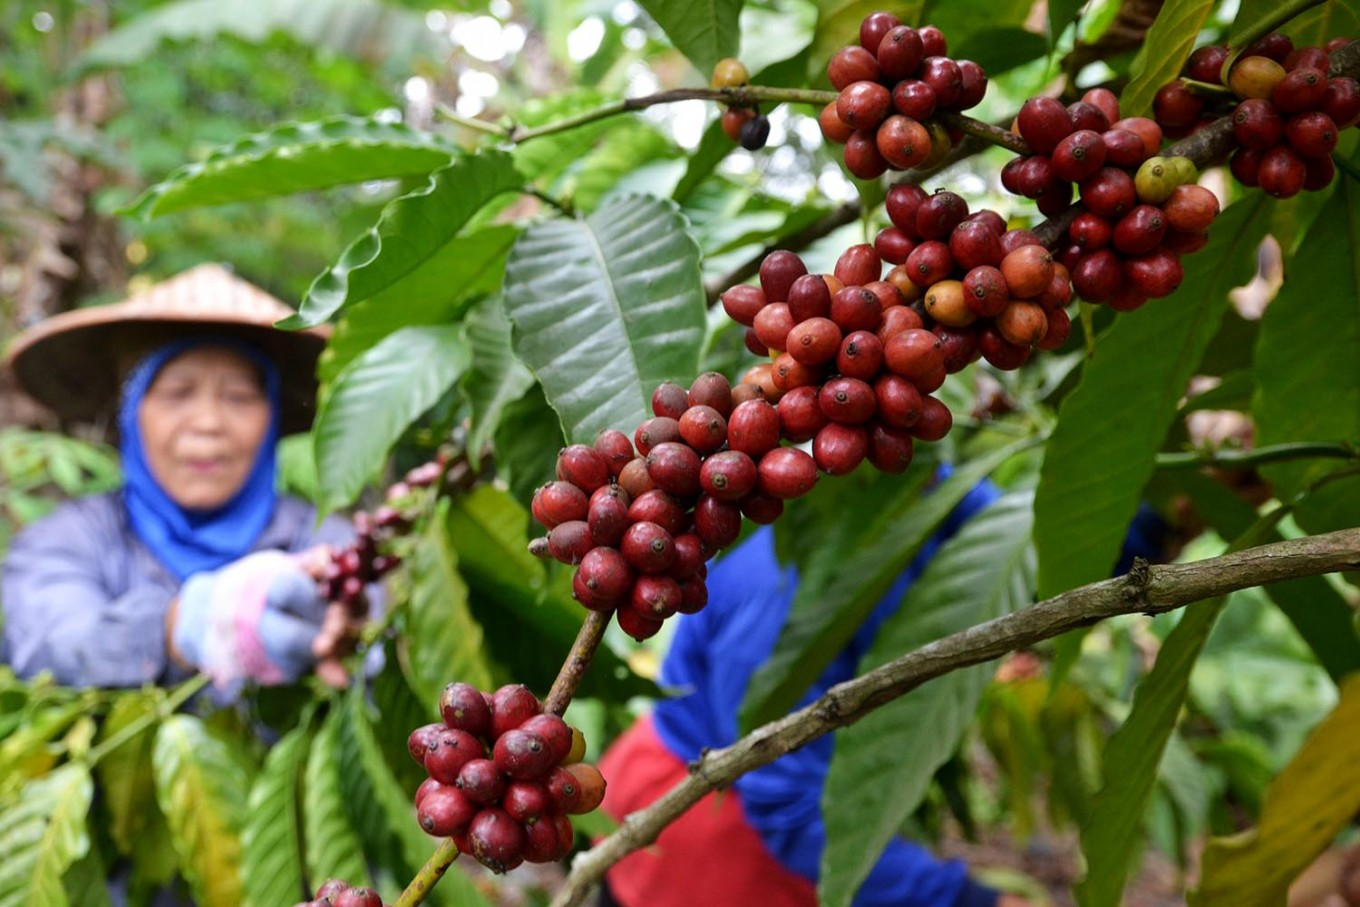 North Sumatra becomes major exporter of agricultural commodities